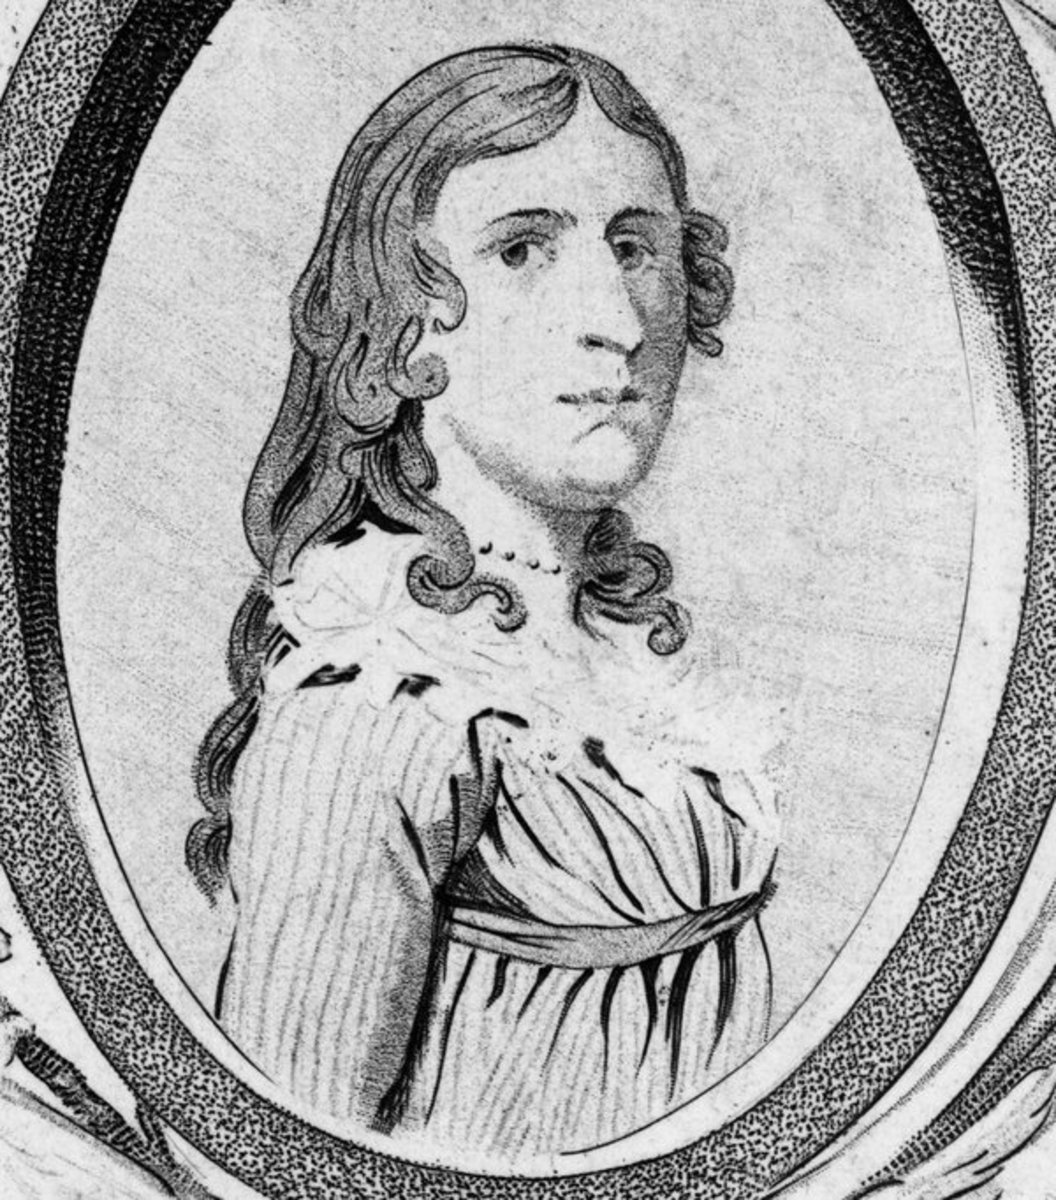 At the age of 21, Deborah dressed as a man and enlisted in the colonial army.